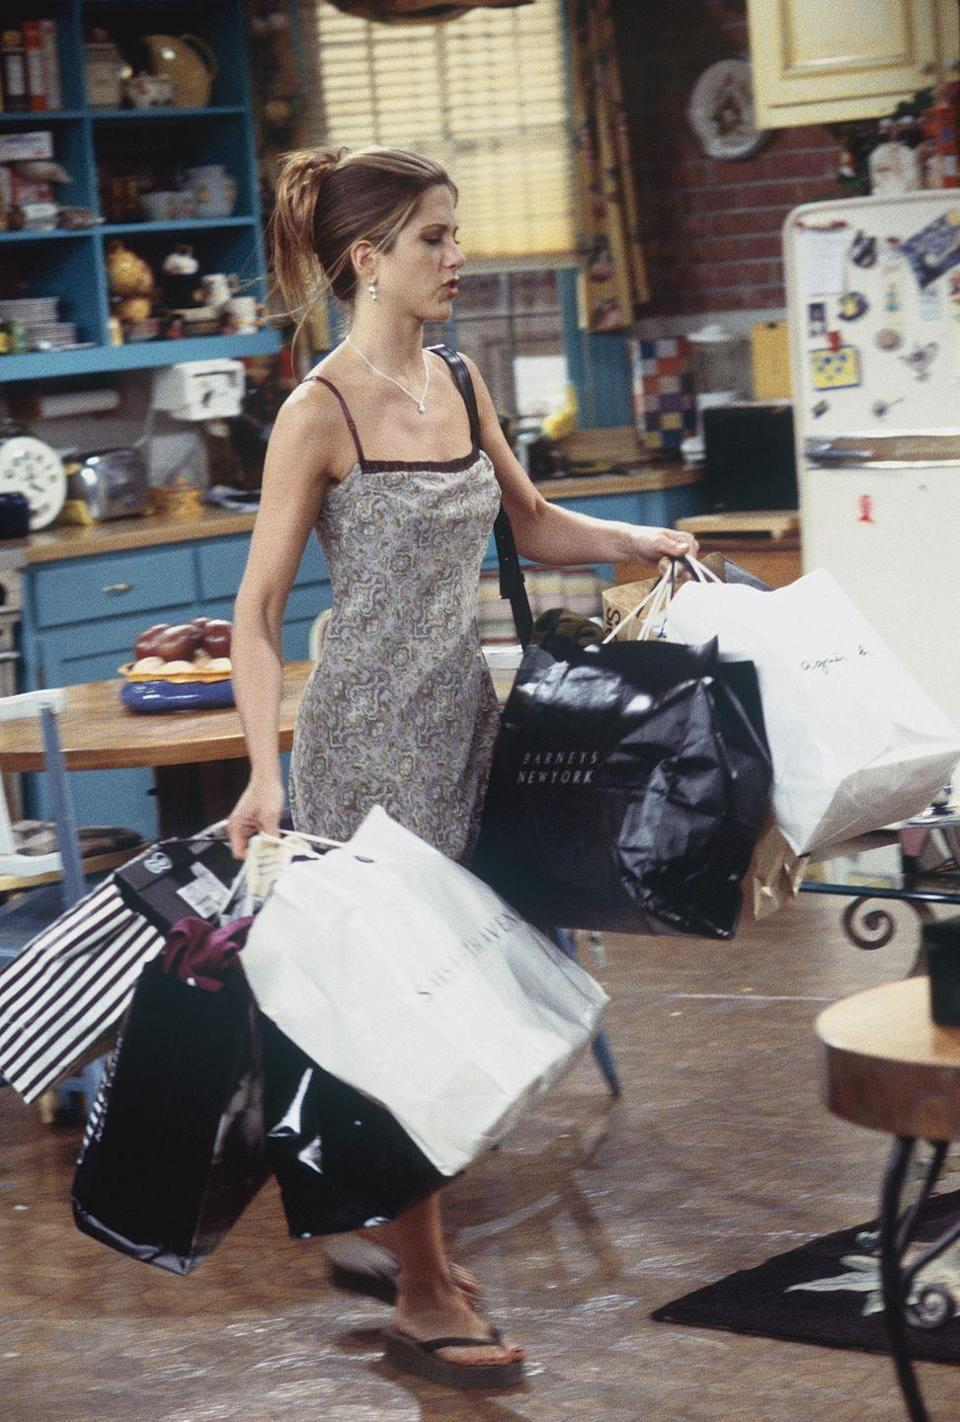 "<p>Was this taken in 2000 or in 2020? It's hard to tell, because Rachel's entire look – from her slip dress to her flip flops – is trending hard right now. </p><p><strong>What you'll need:</strong> <em>Wild Night Slip Dress, $104.90, Good American</em></p><p><a class=""link rapid-noclick-resp"" href=""https://go.redirectingat.com?id=74968X1596630&url=https%3A%2F%2Fwww.goodamerican.com%2Fproducts%2Fwild-night-slip-dress-jungle001%3F_pos%3D2%26_sid%3D29aabd5f1%26_ss%3Dr&sref=https%3A%2F%2Fwww.seventeen.com%2Ffashion%2Fceleb-fashion%2Fg29439613%2Frachel-green-outfits-friends%2F"" rel=""nofollow noopener"" target=""_blank"" data-ylk=""slk:SHOP NOW"">SHOP NOW</a></p>"